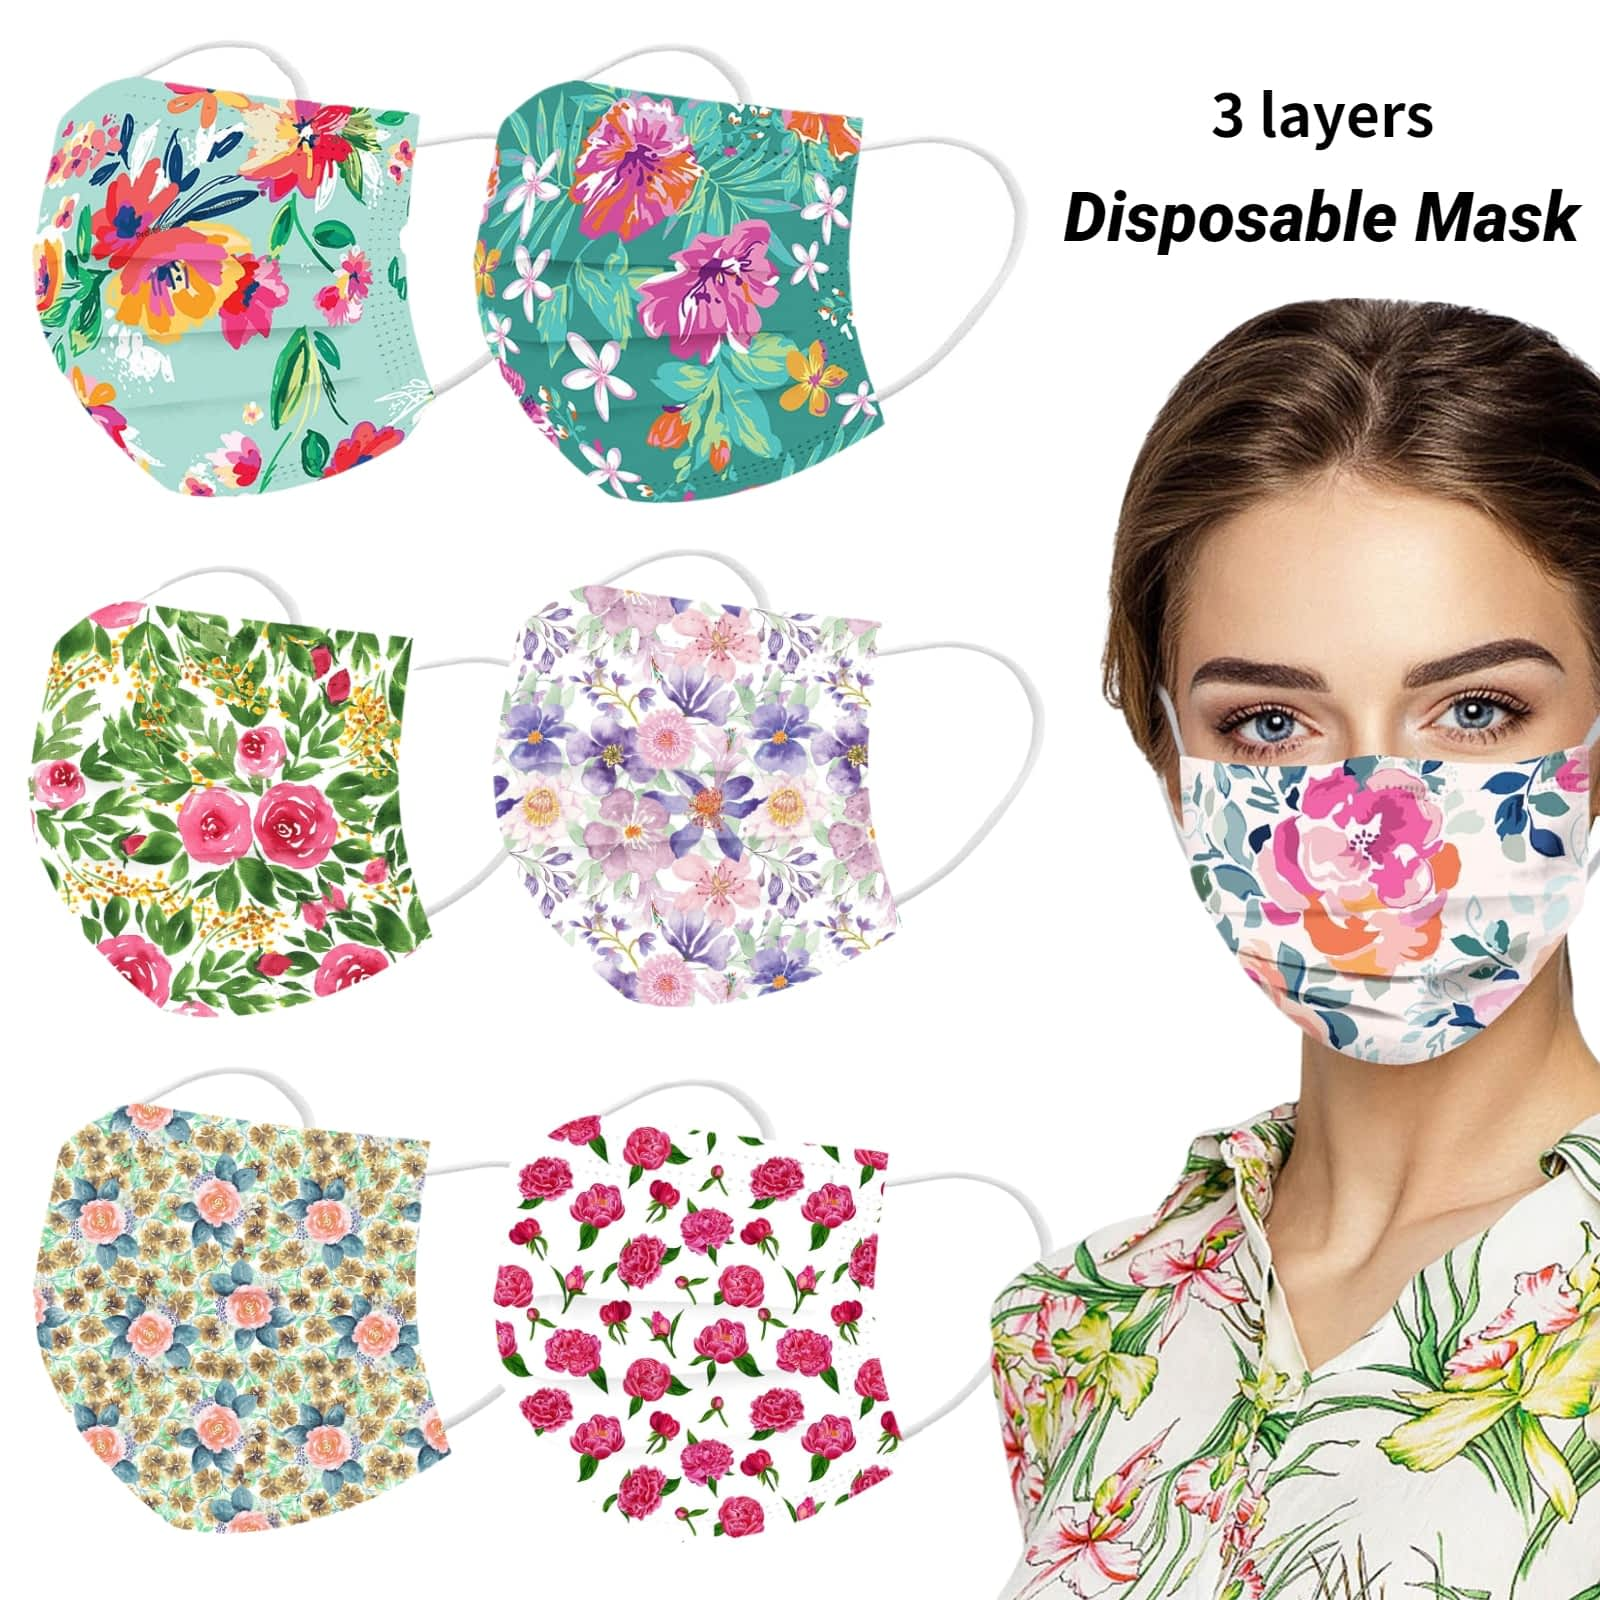 10-100pcs-Flower-Print-Adult-Disposable-Mask-Fashion-Printed-3ply-Filter-Mouth-Cover-Mascarillas-Breathable-Face-7.jpg